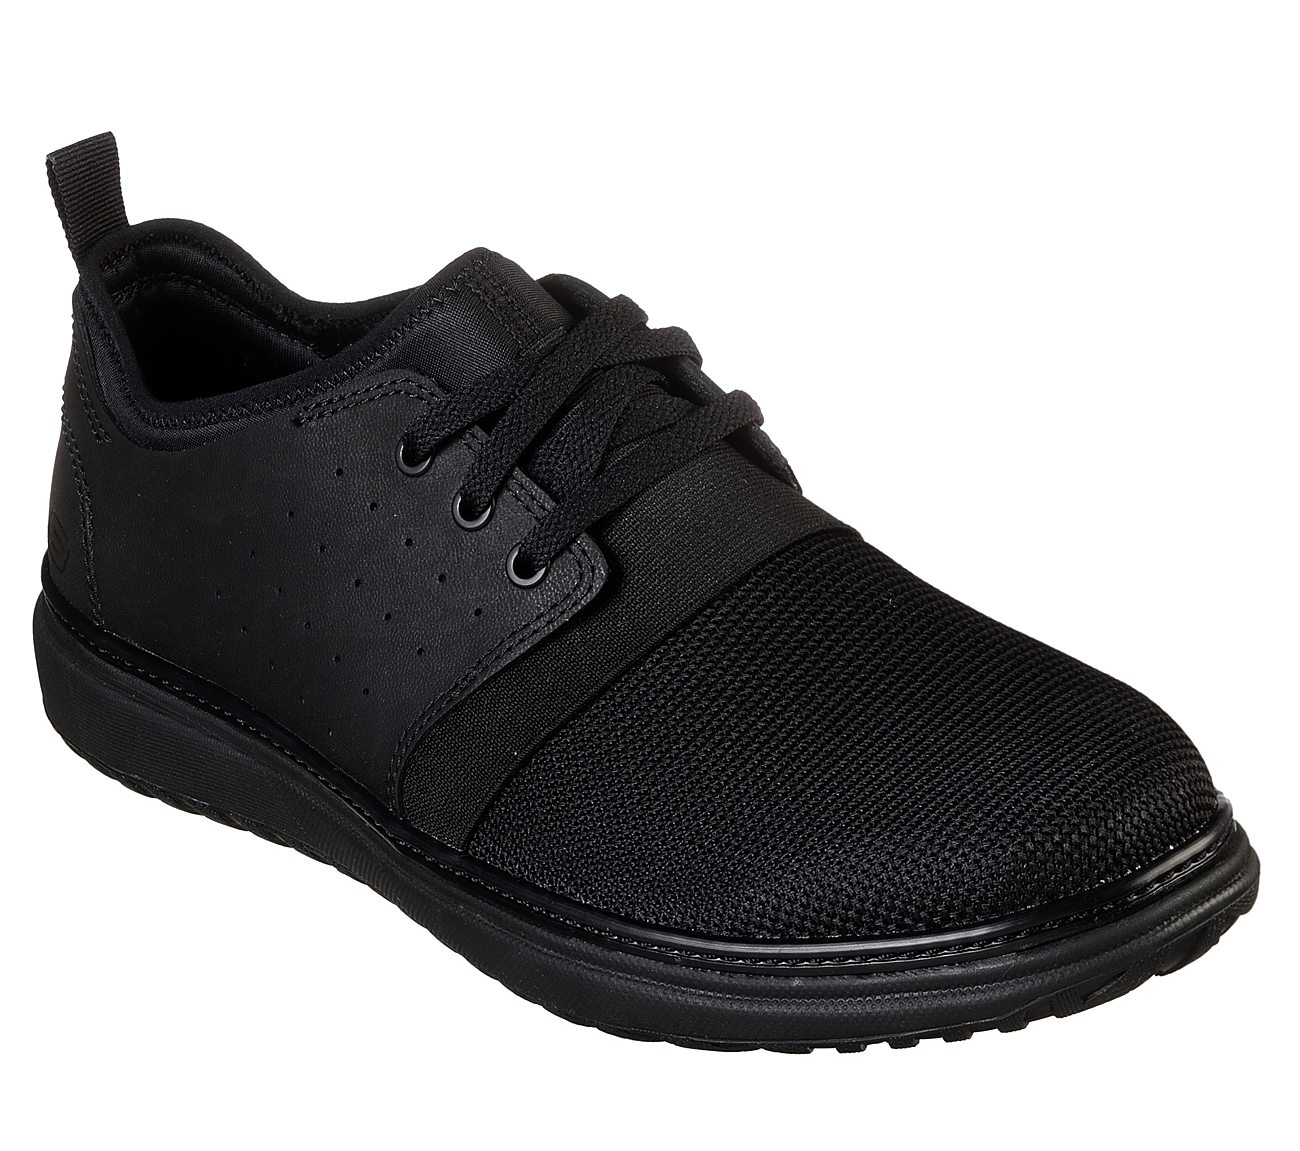 a431bfbdd41 Buy SKECHERS Work Relaxed Fit  Mohall - Raponda SR Work Shoes only ...